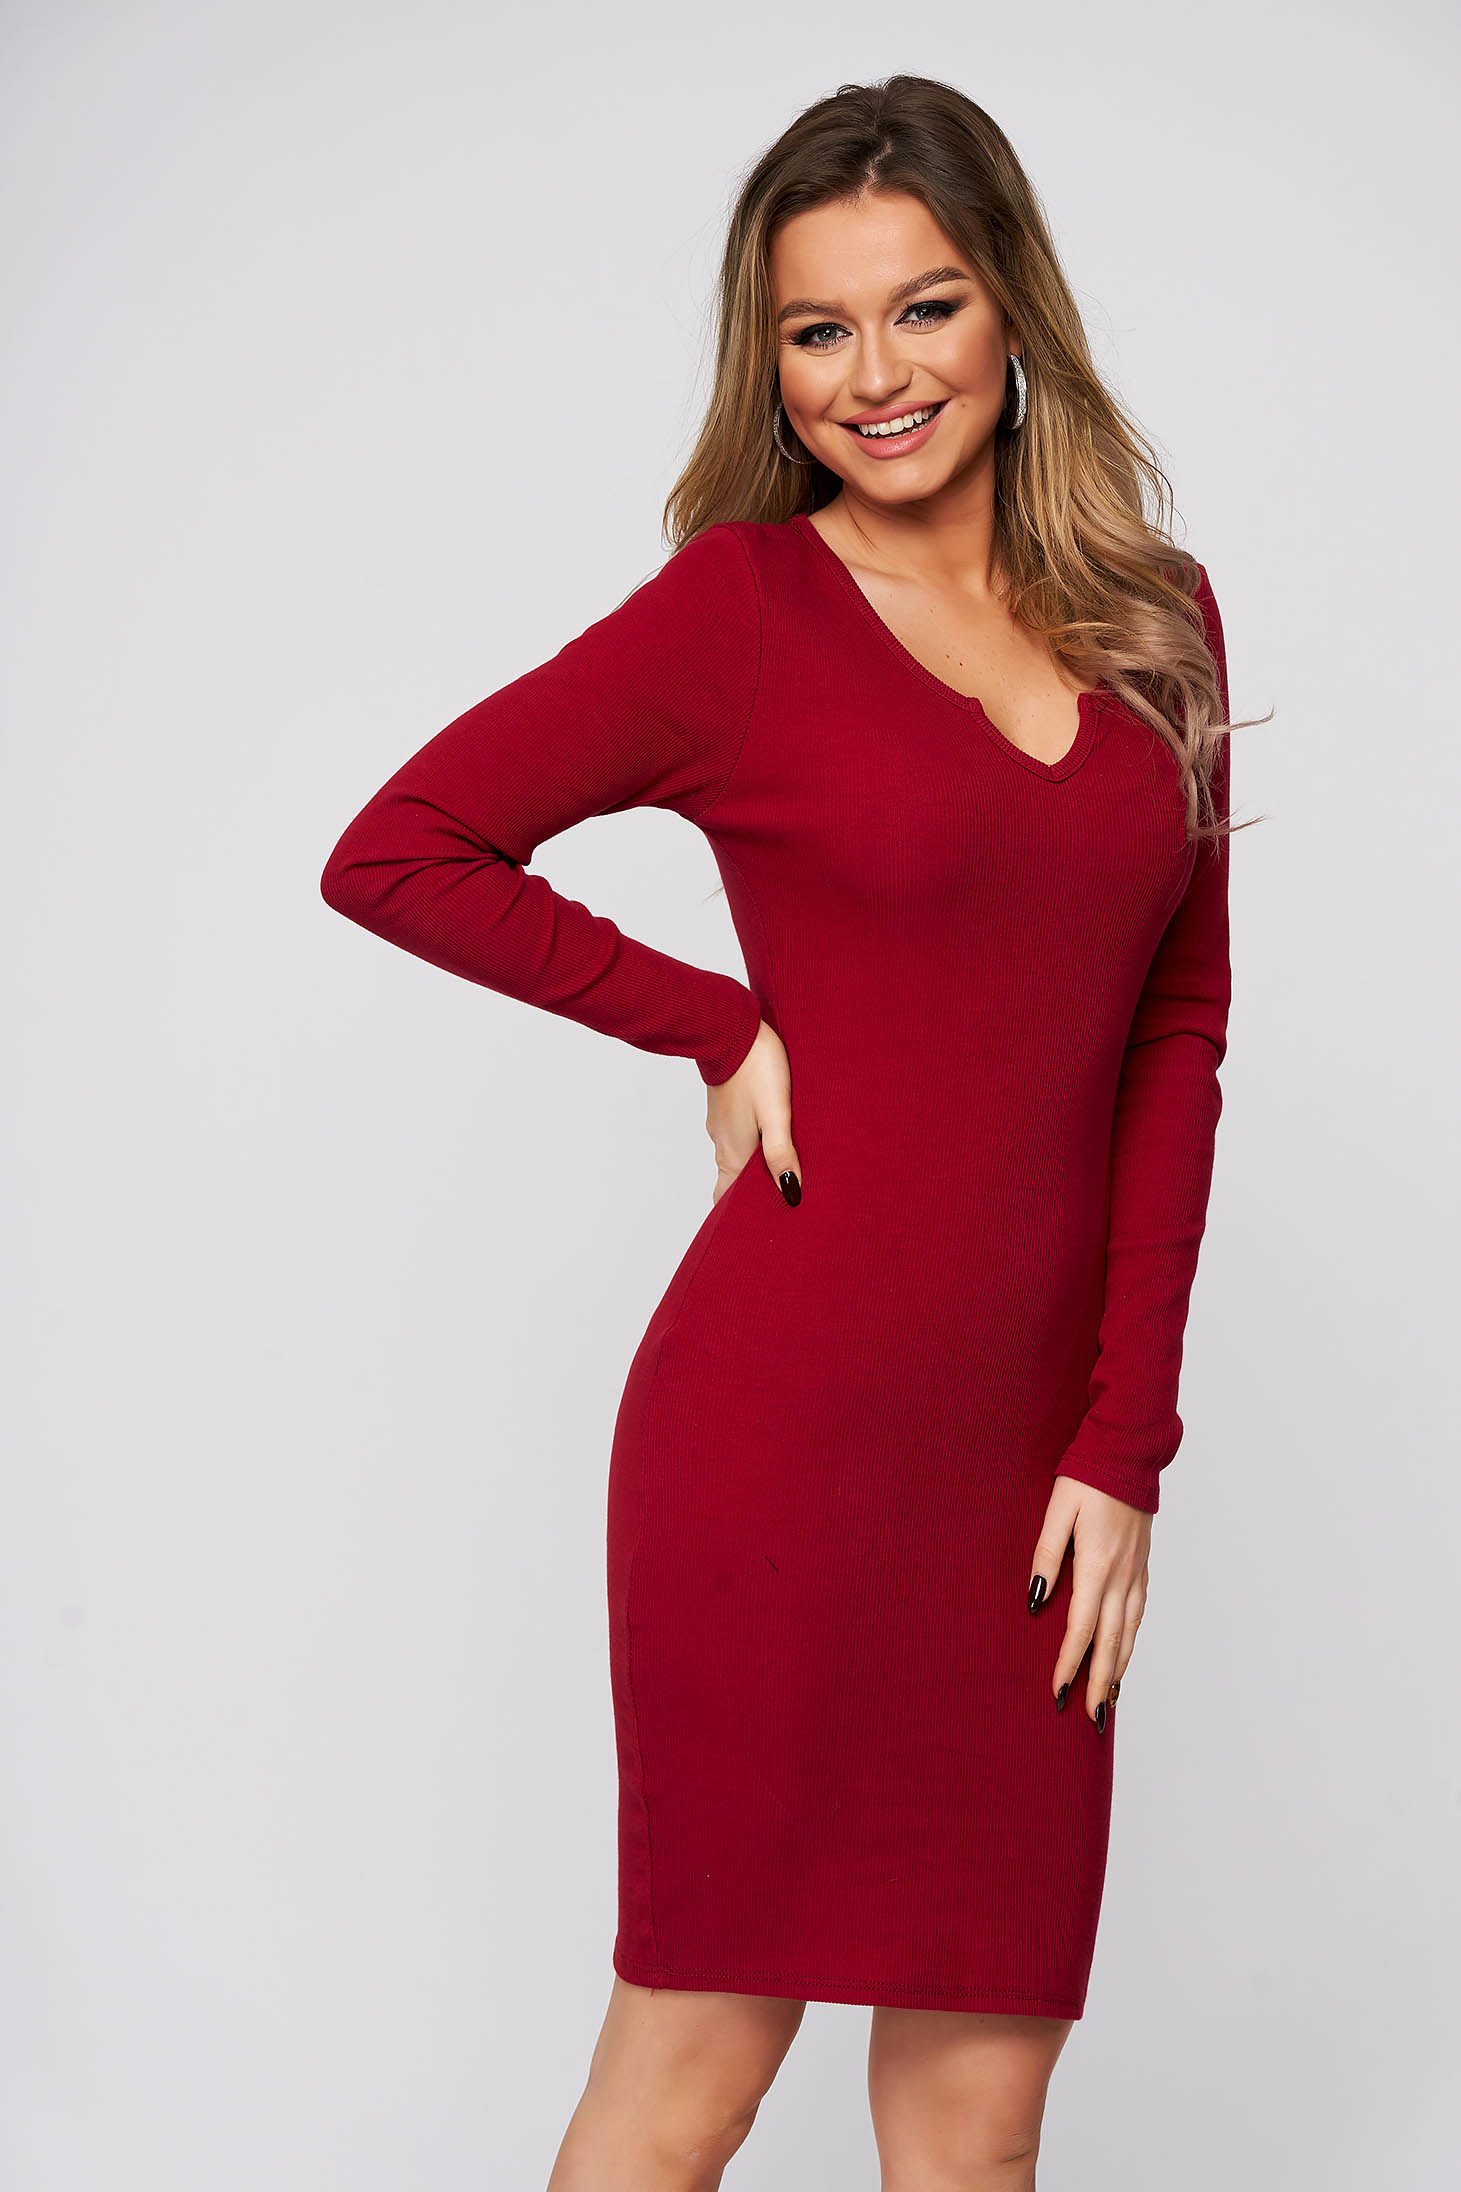 Burgundy dress cotton from elastic fabric with tented cut with deep cleavage